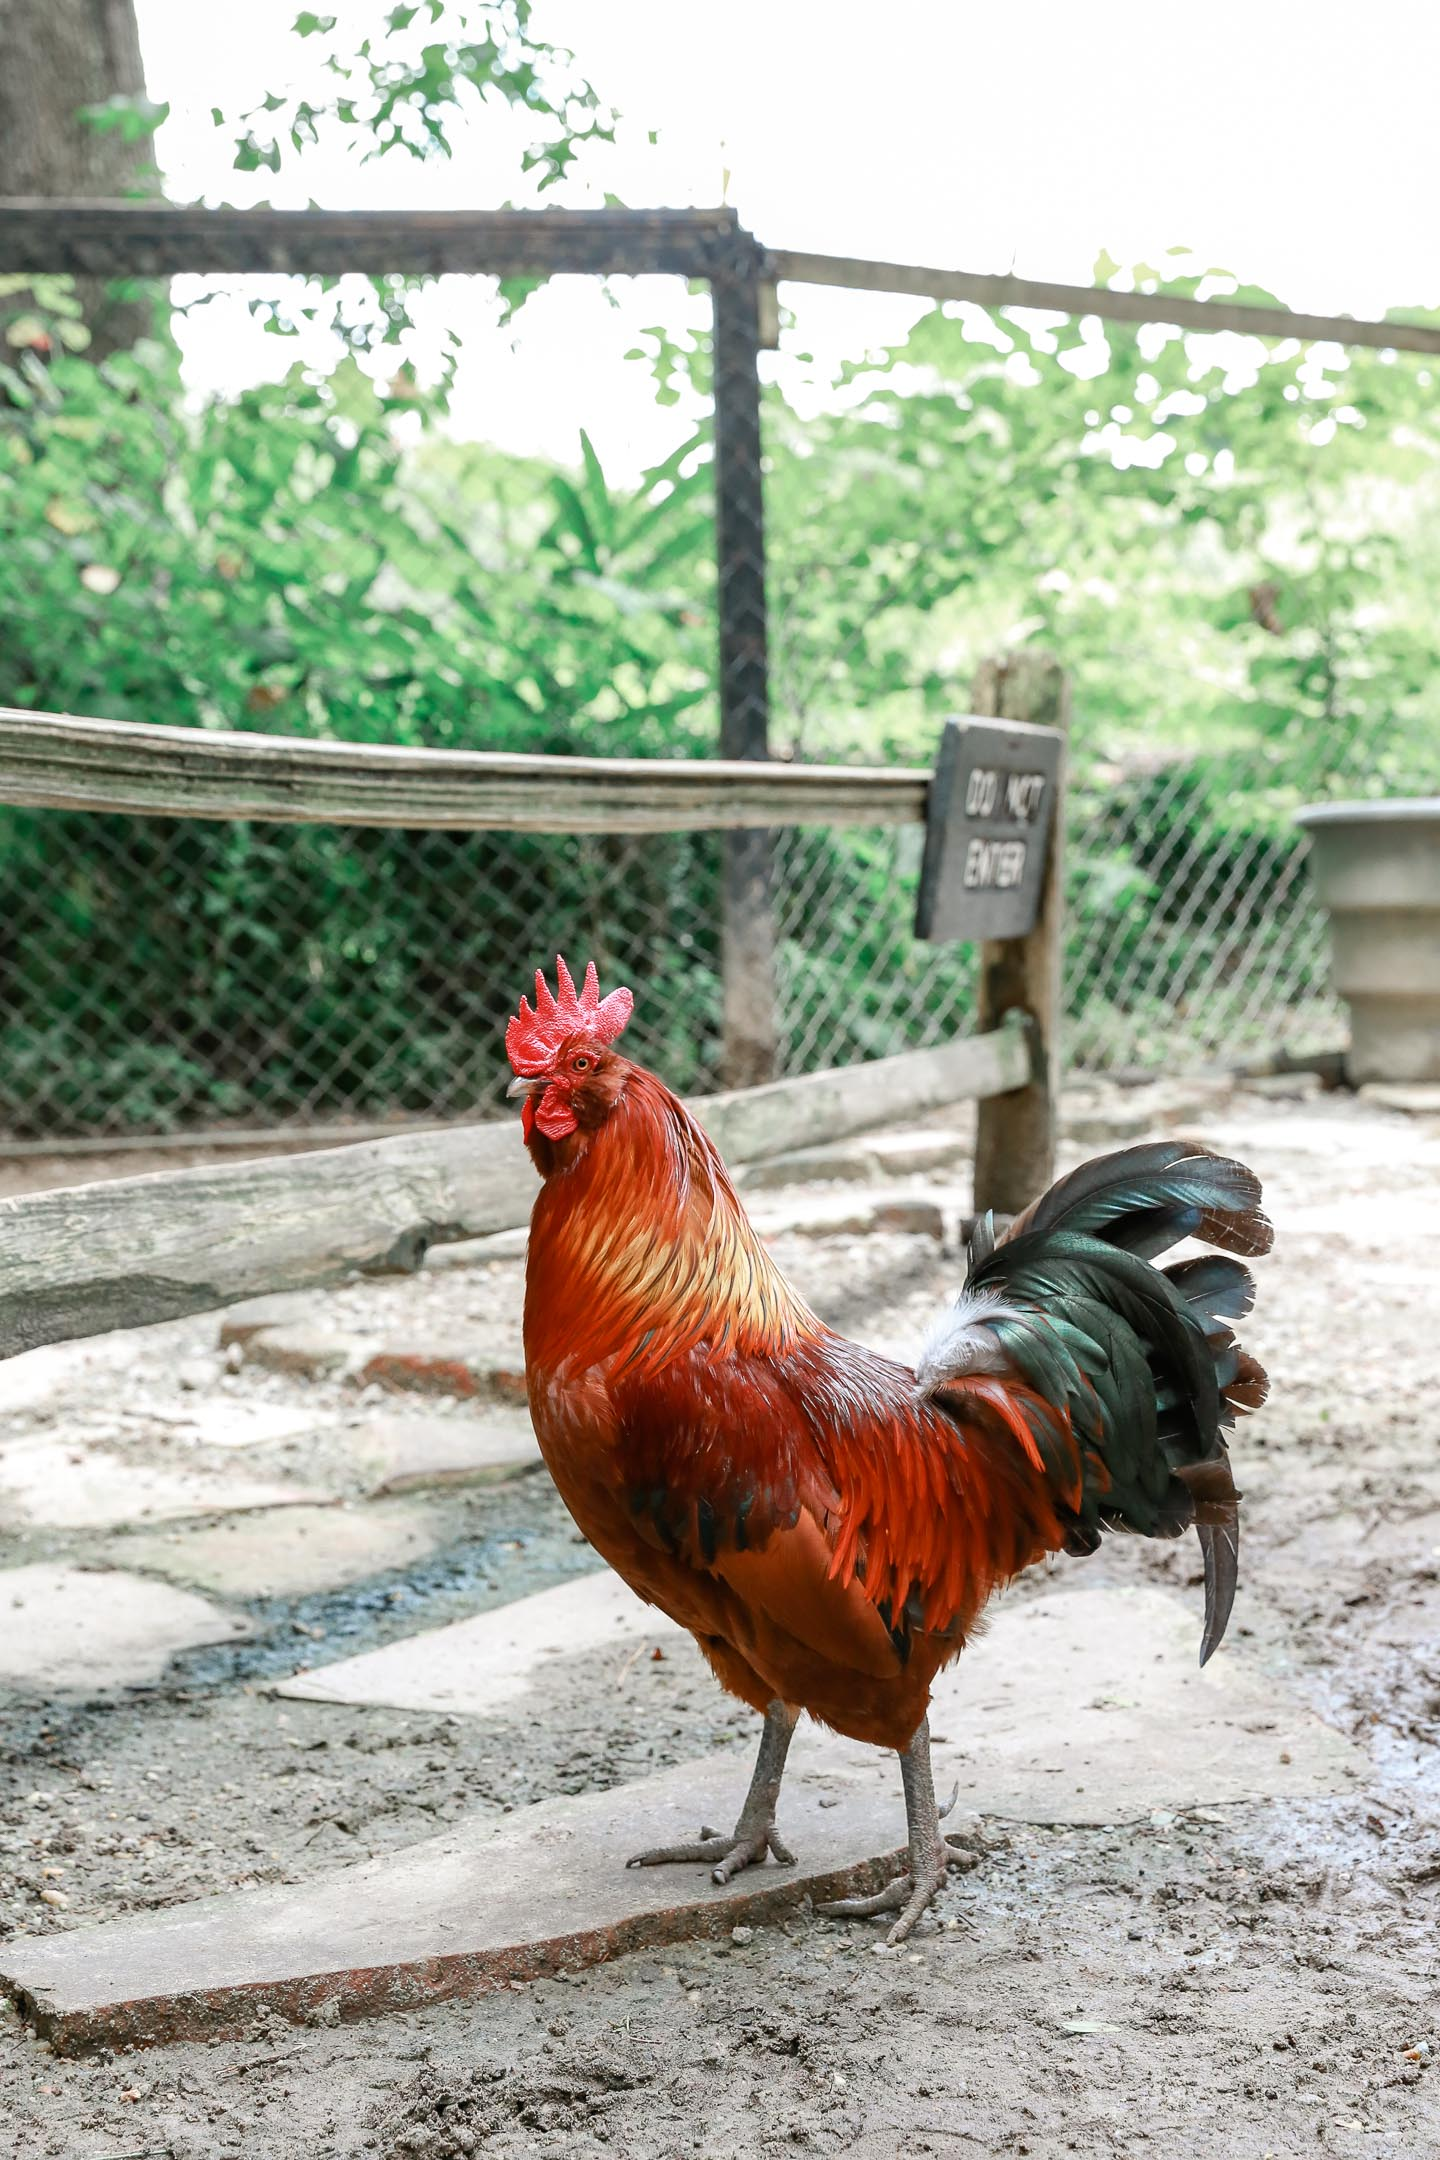 A colorful rooster